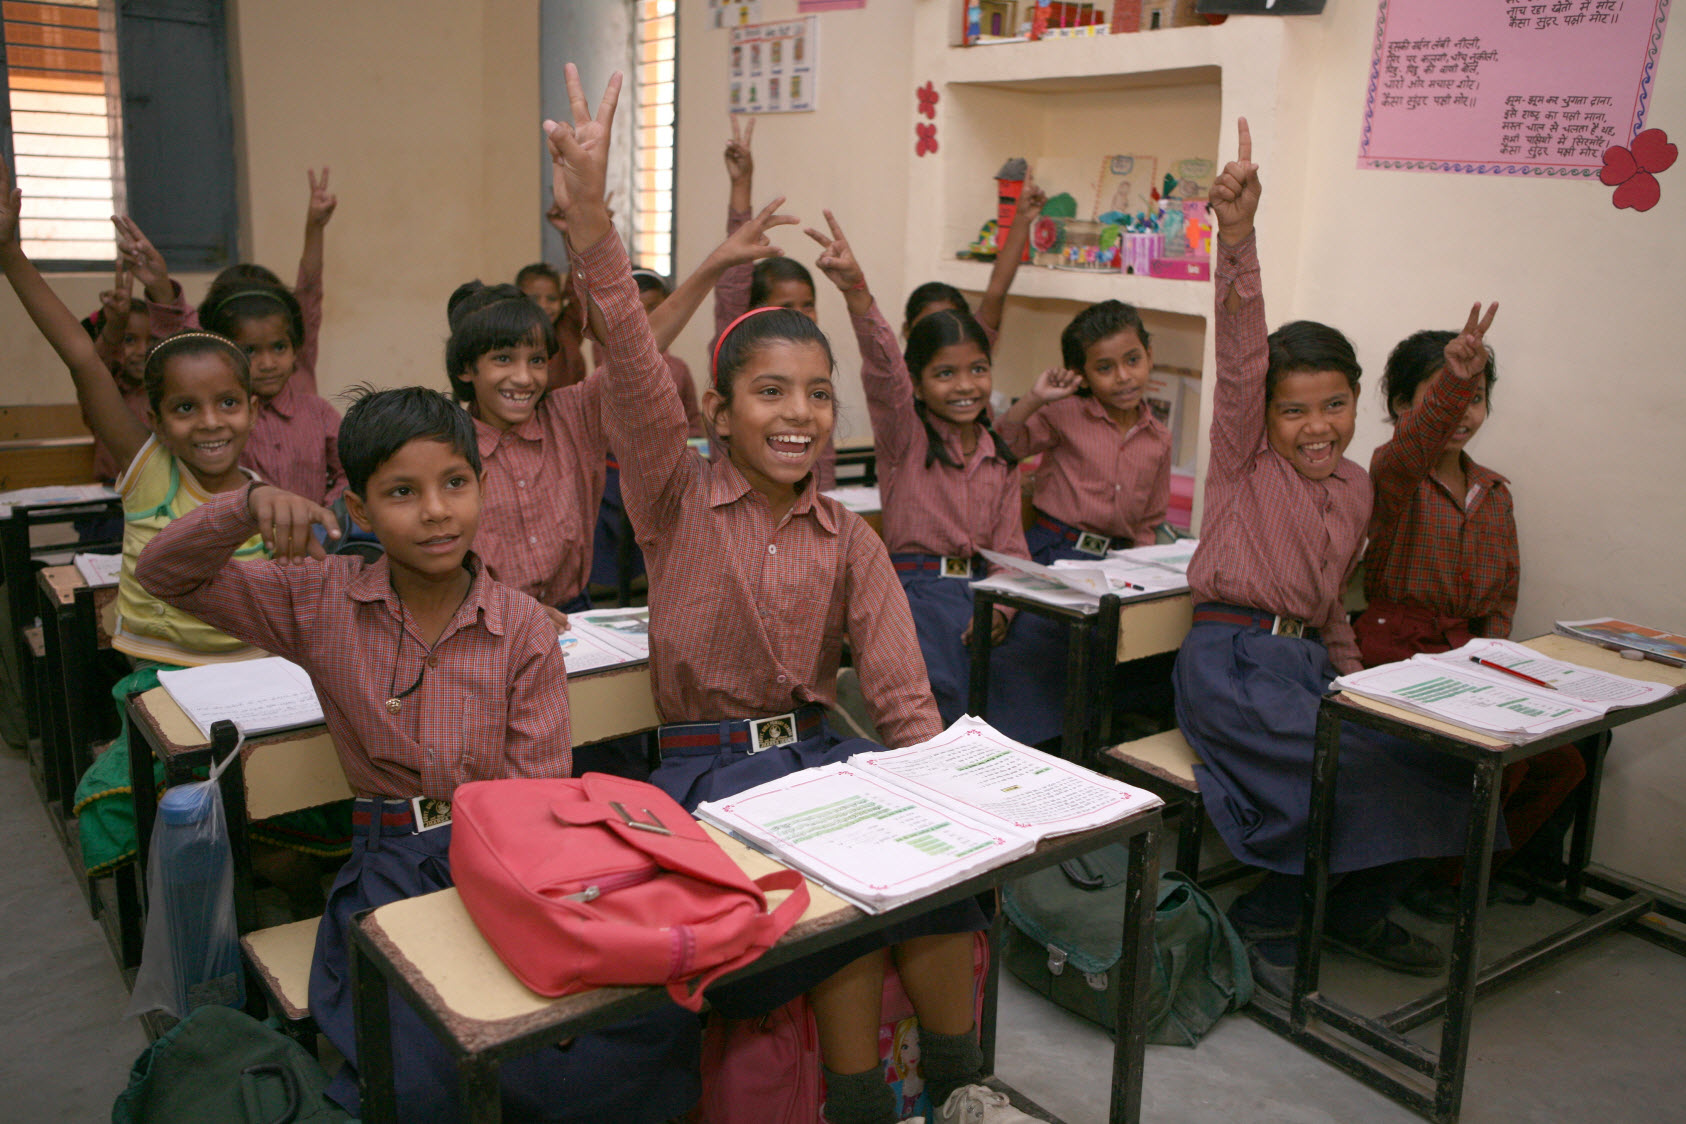 Fresenius Kabi enhances school facilities in India